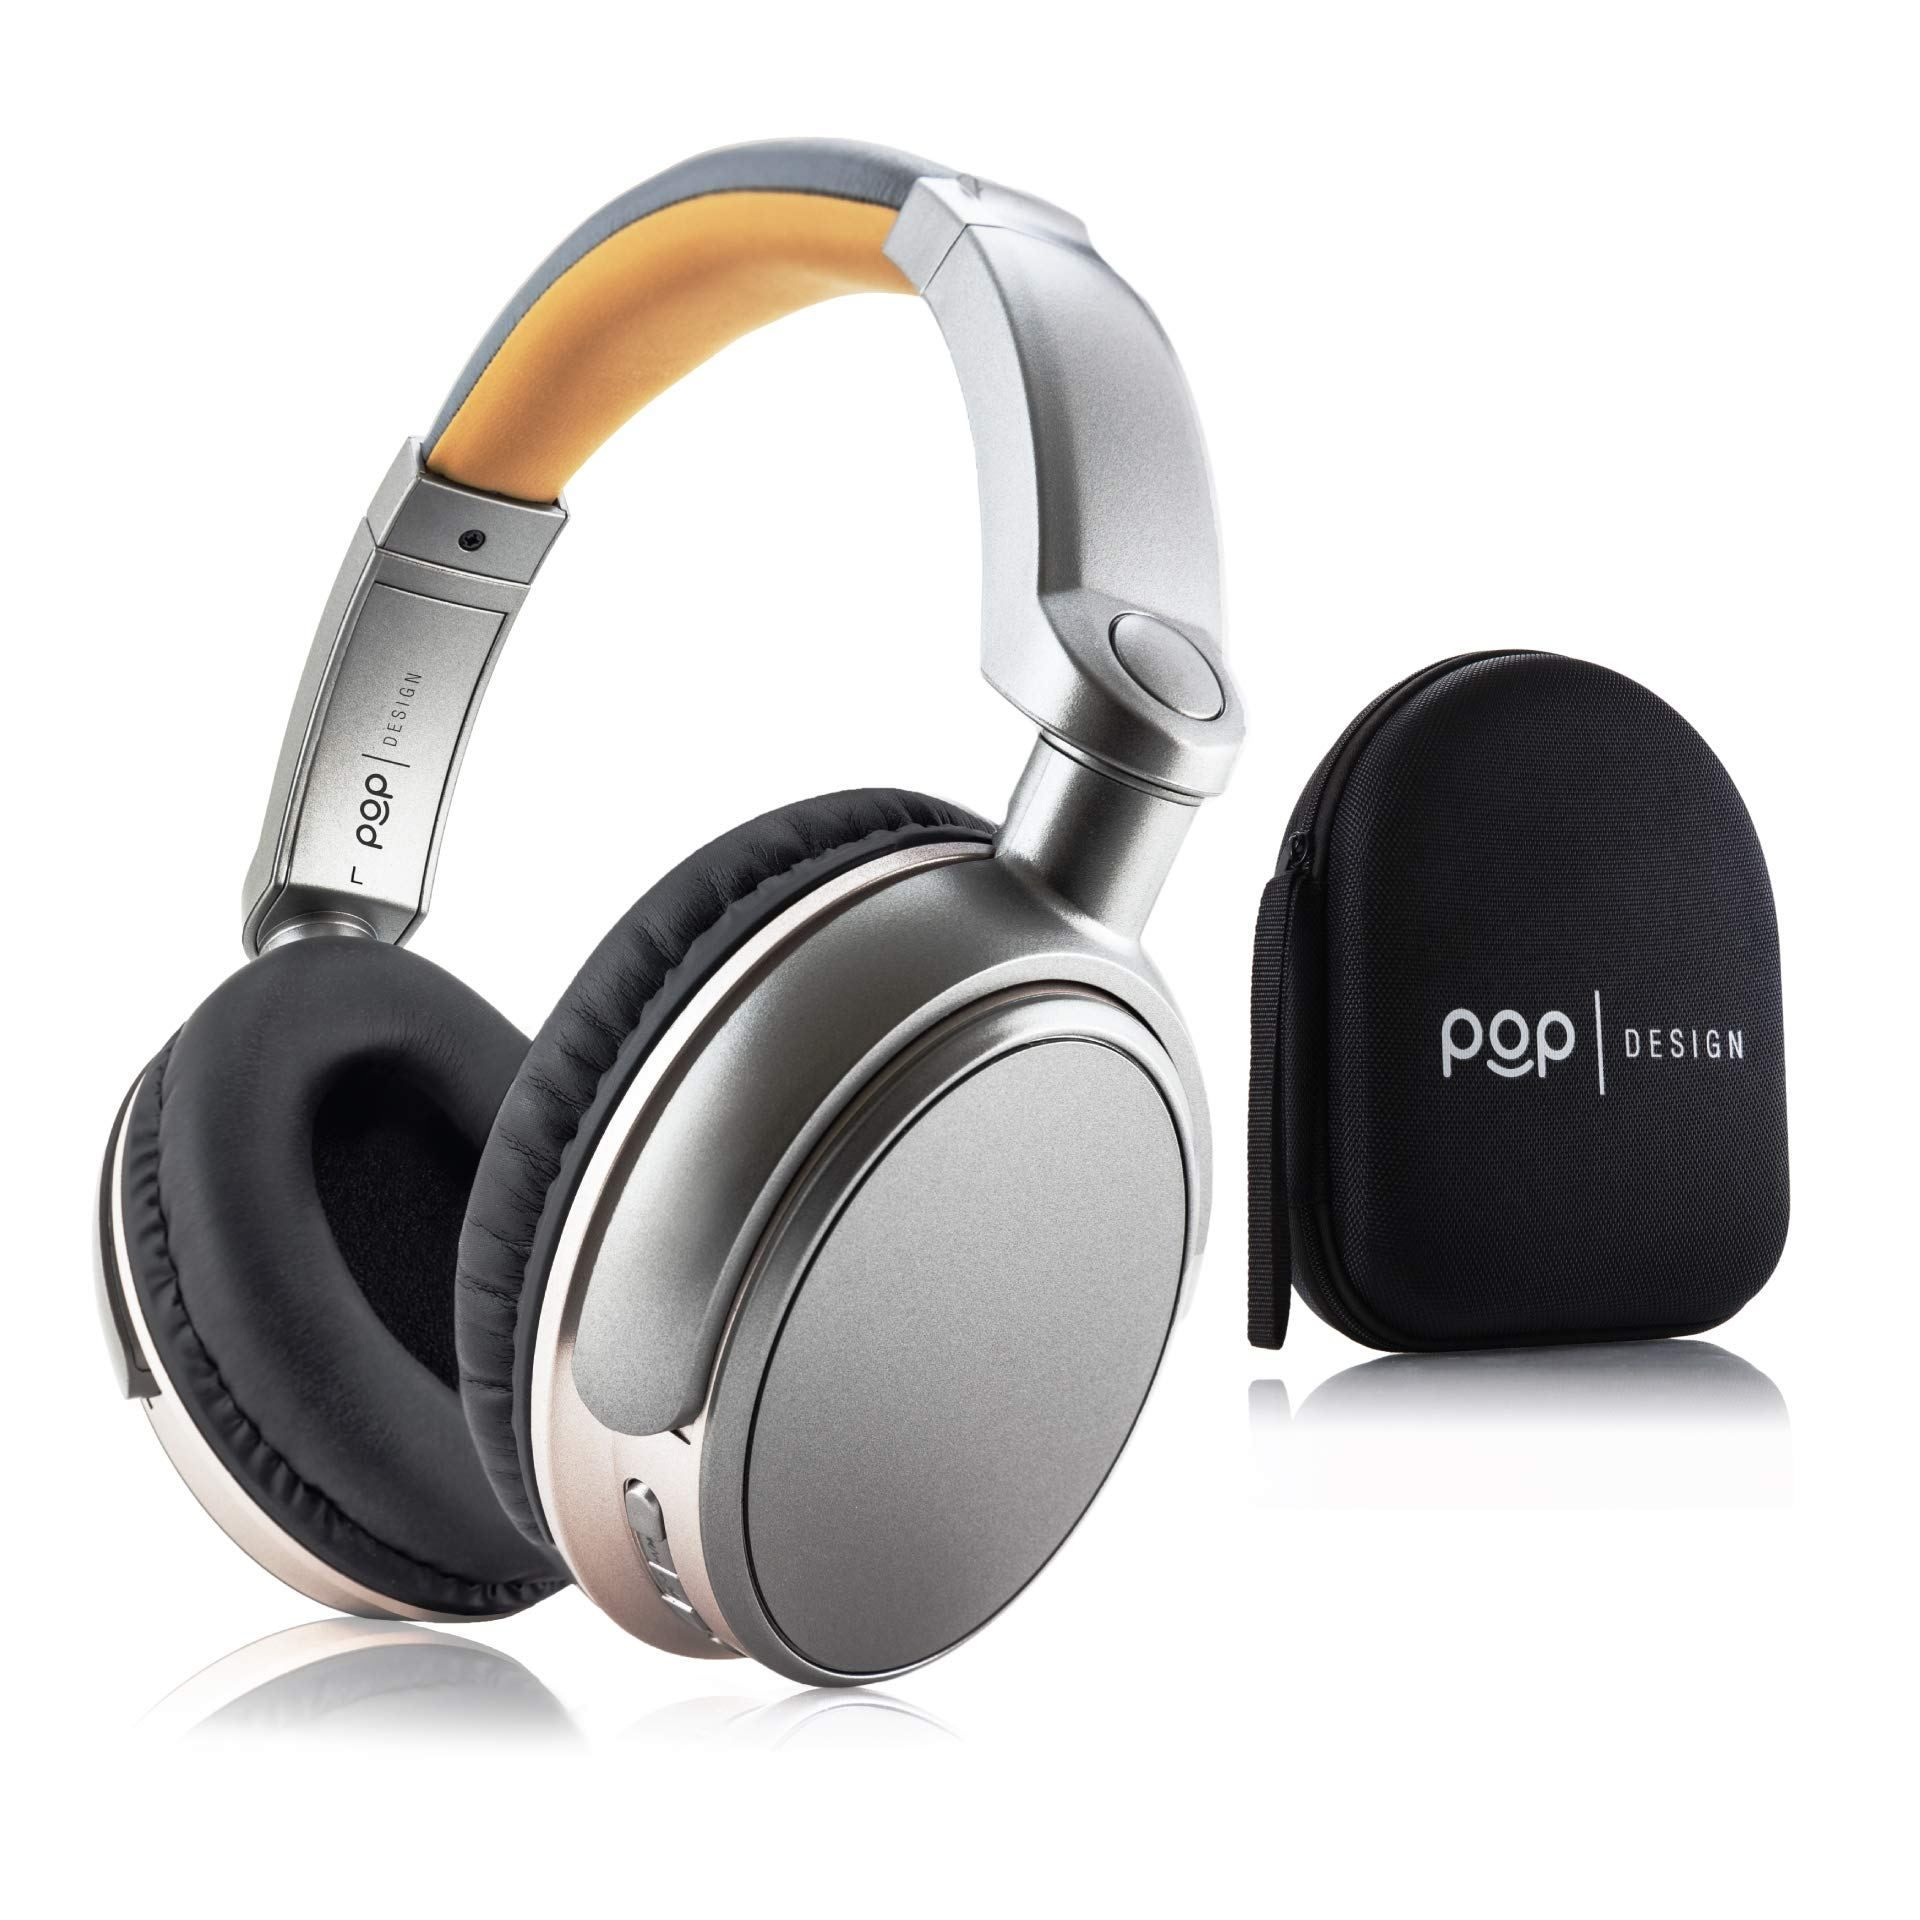 Boughtagain Awesome Goods You Bought It Again Stereo Headphones Headphones Bluetooth Headphones Wireless